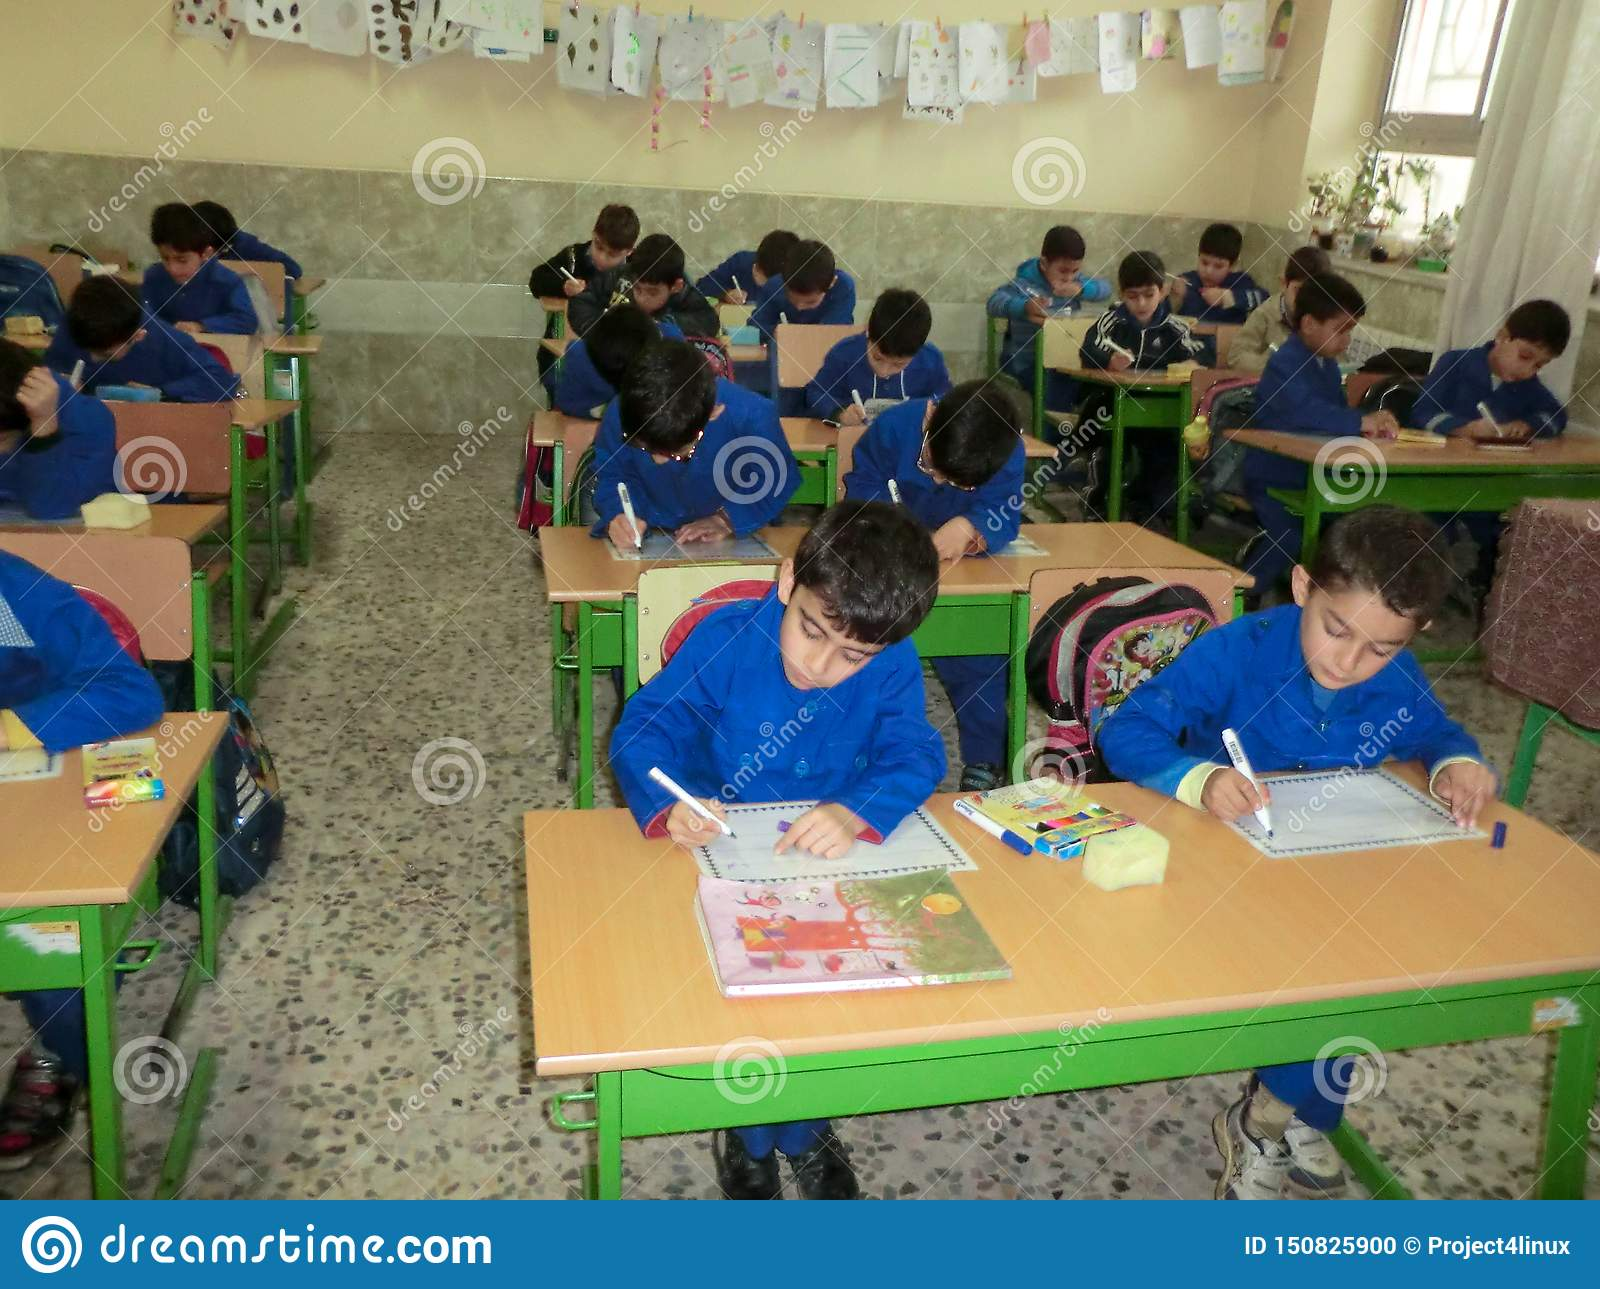 Elementary school boys Gilan Iran. One of the primary school boys in Rasht, Guilan province, Iran